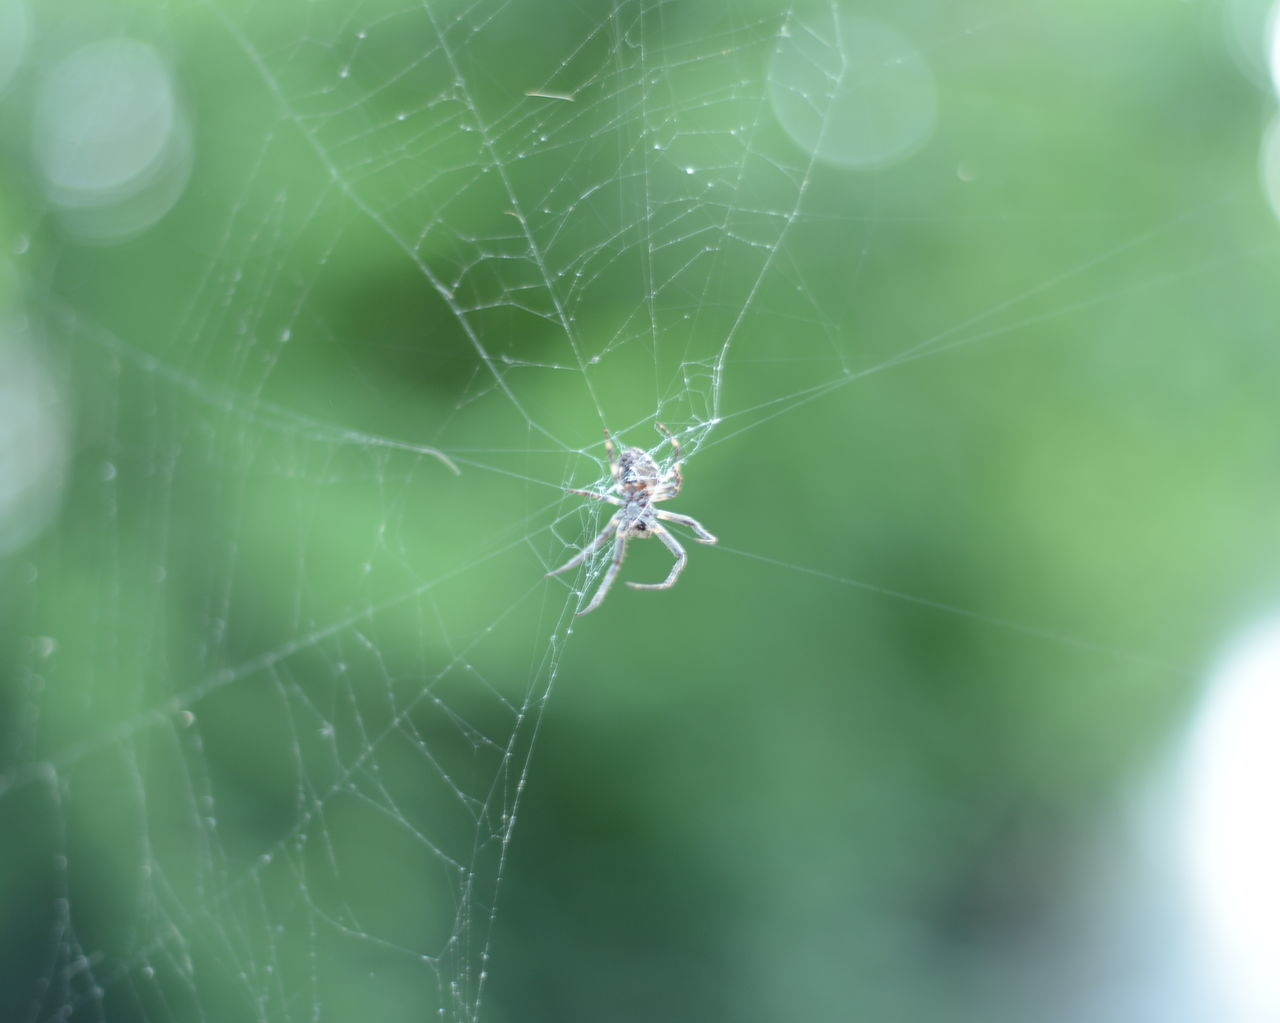 spider web, spider, focus on foreground, one animal, web, close-up, nature, fragility, animal themes, insect, animals in the wild, day, no people, outdoors